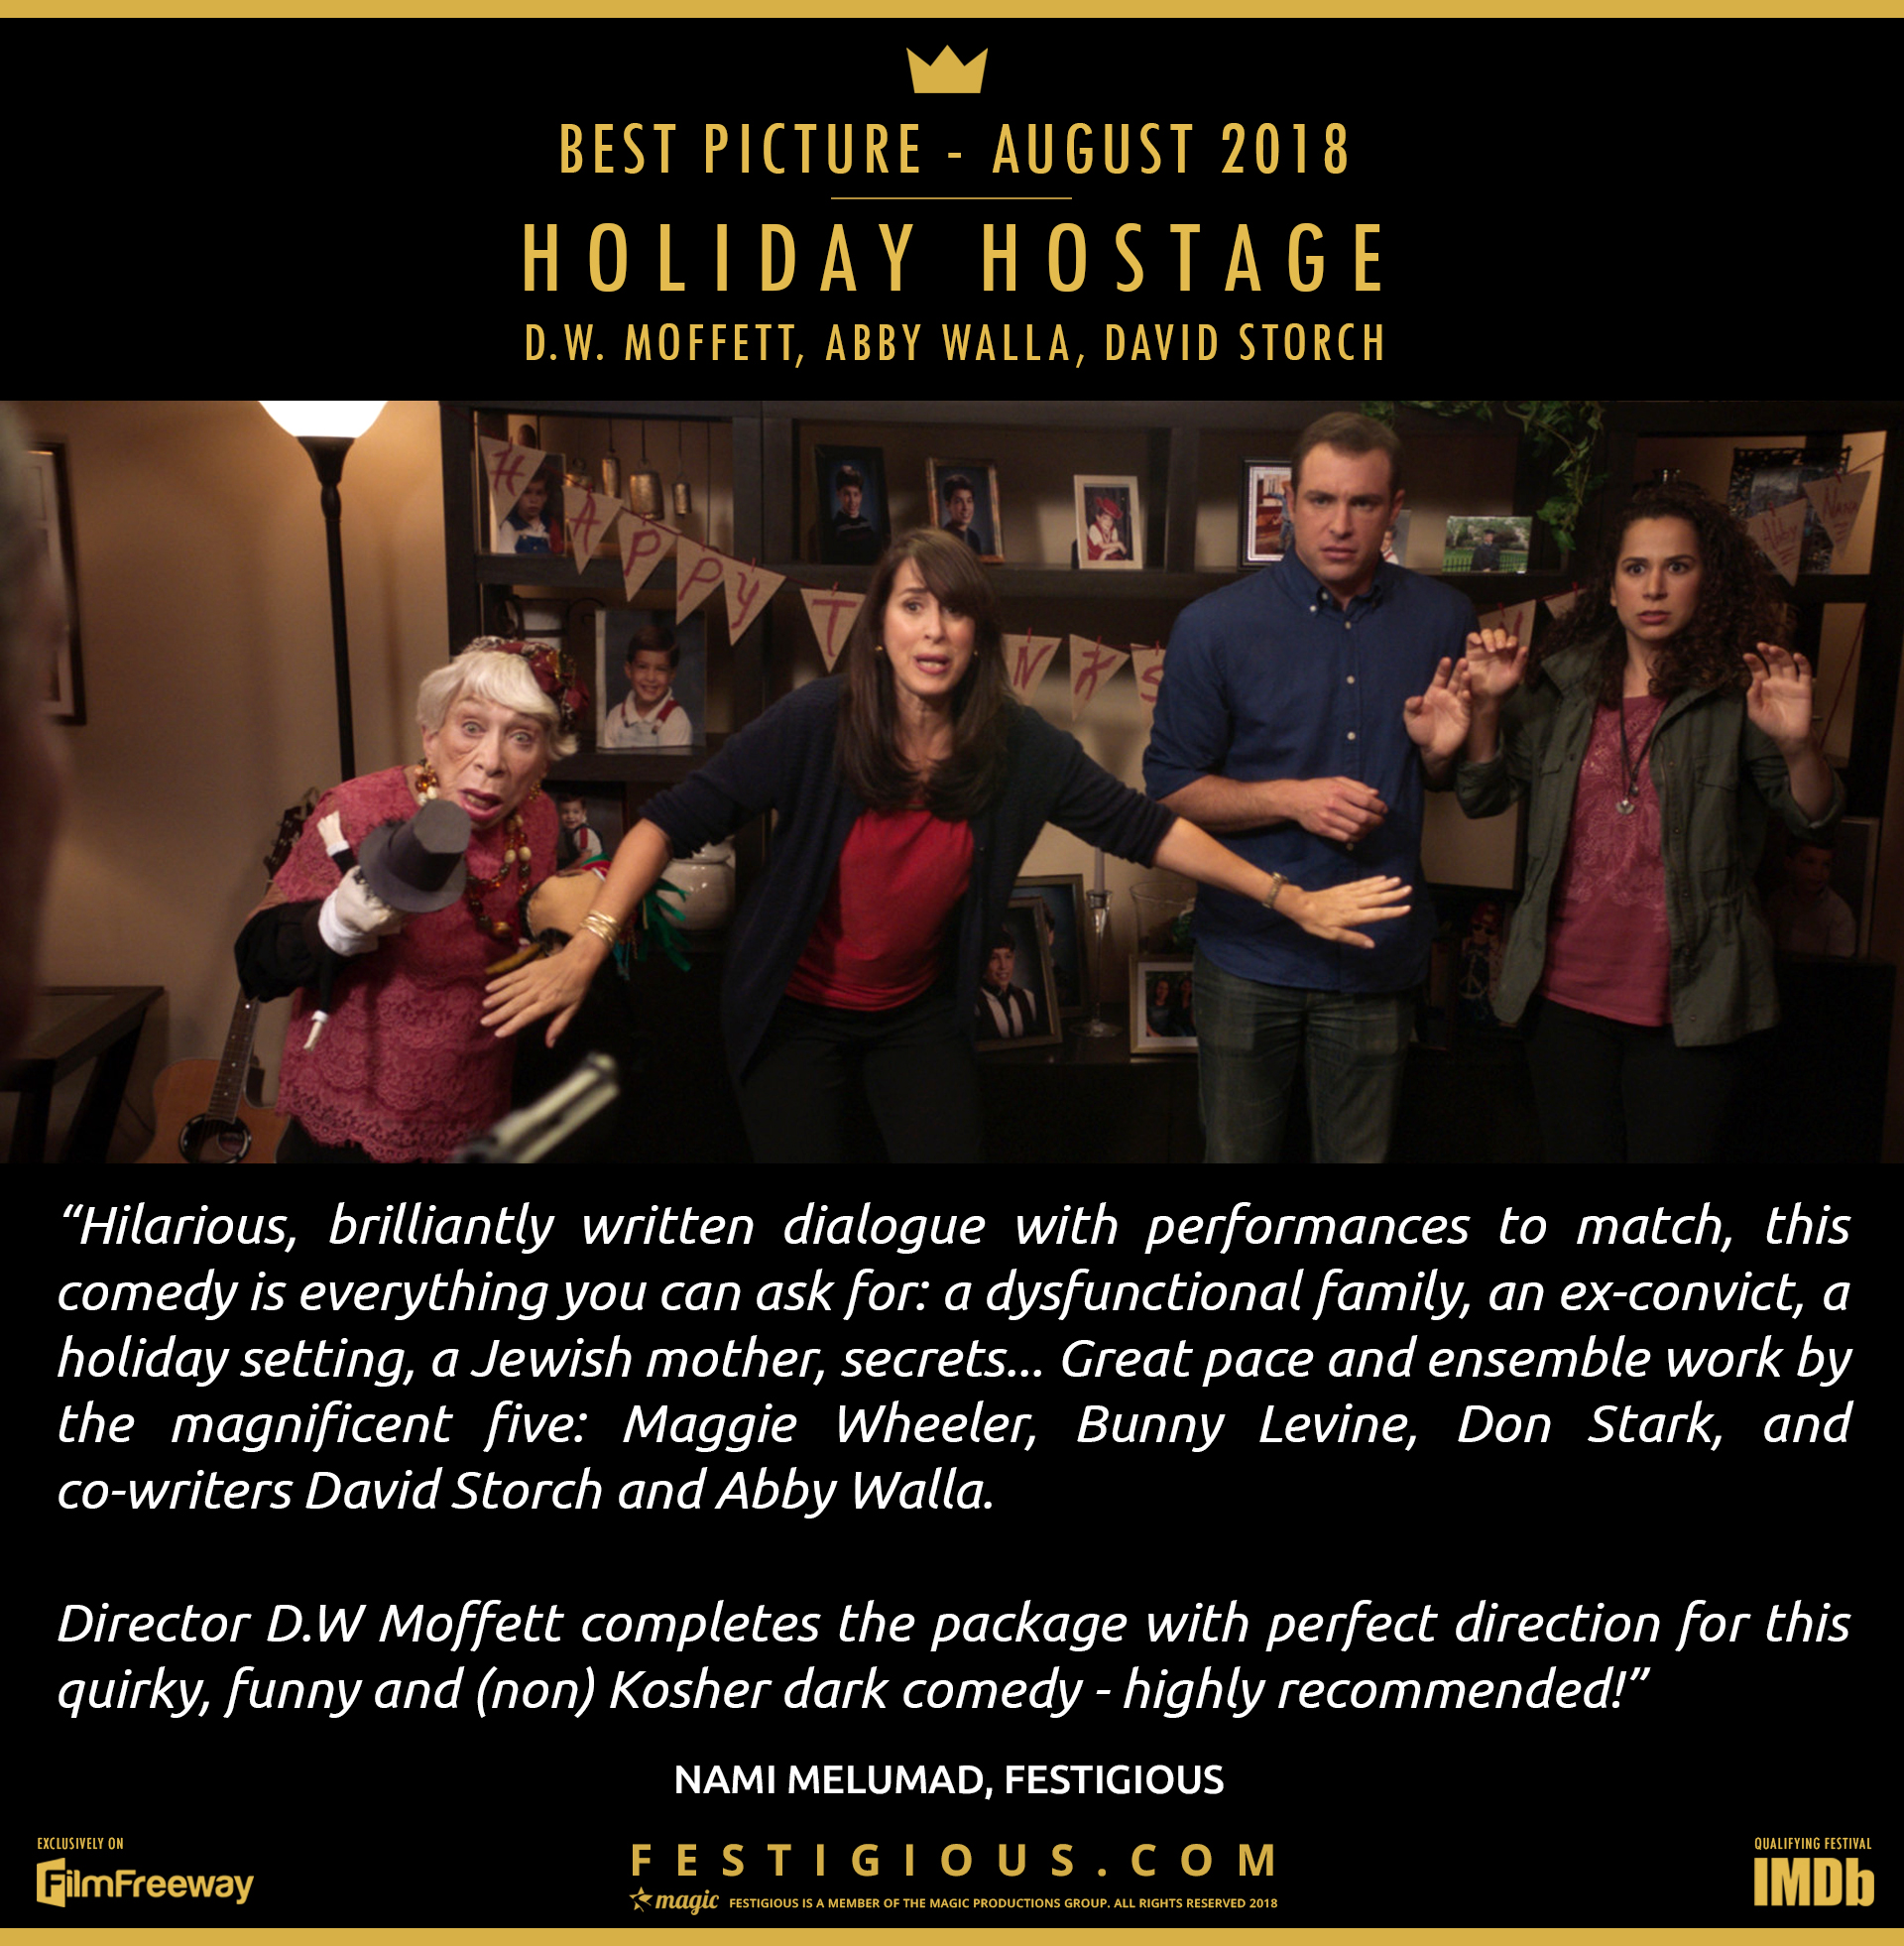 Holiday Hostage - Best Picture